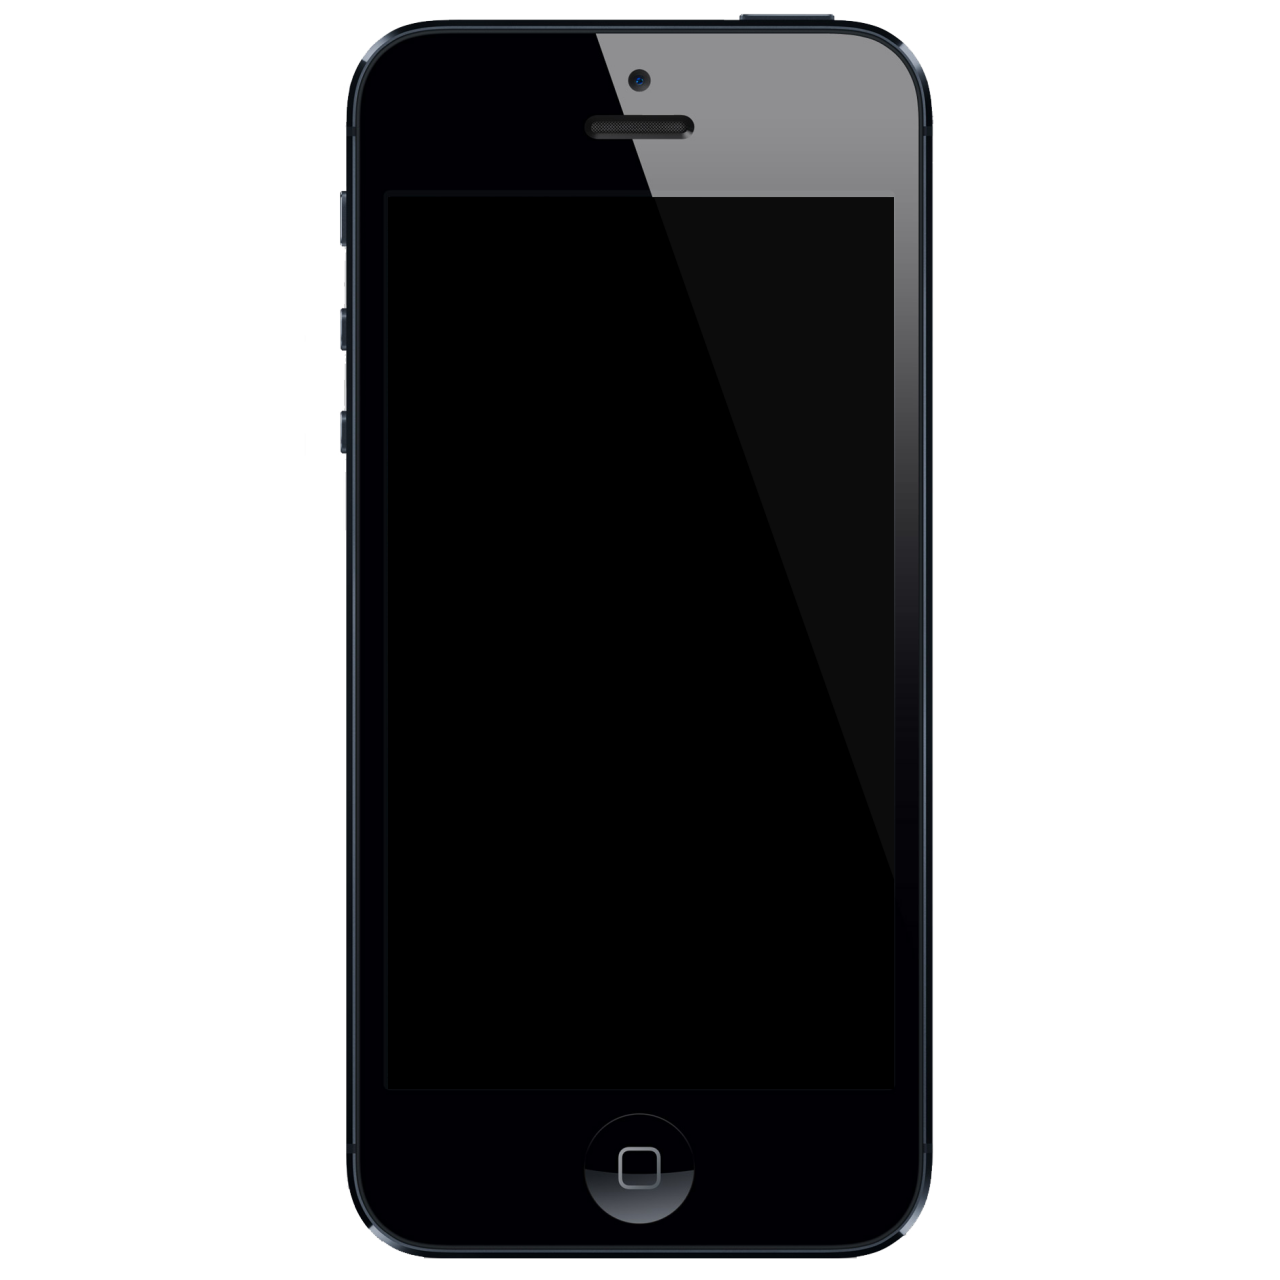 Black iphone 7 png #34206.